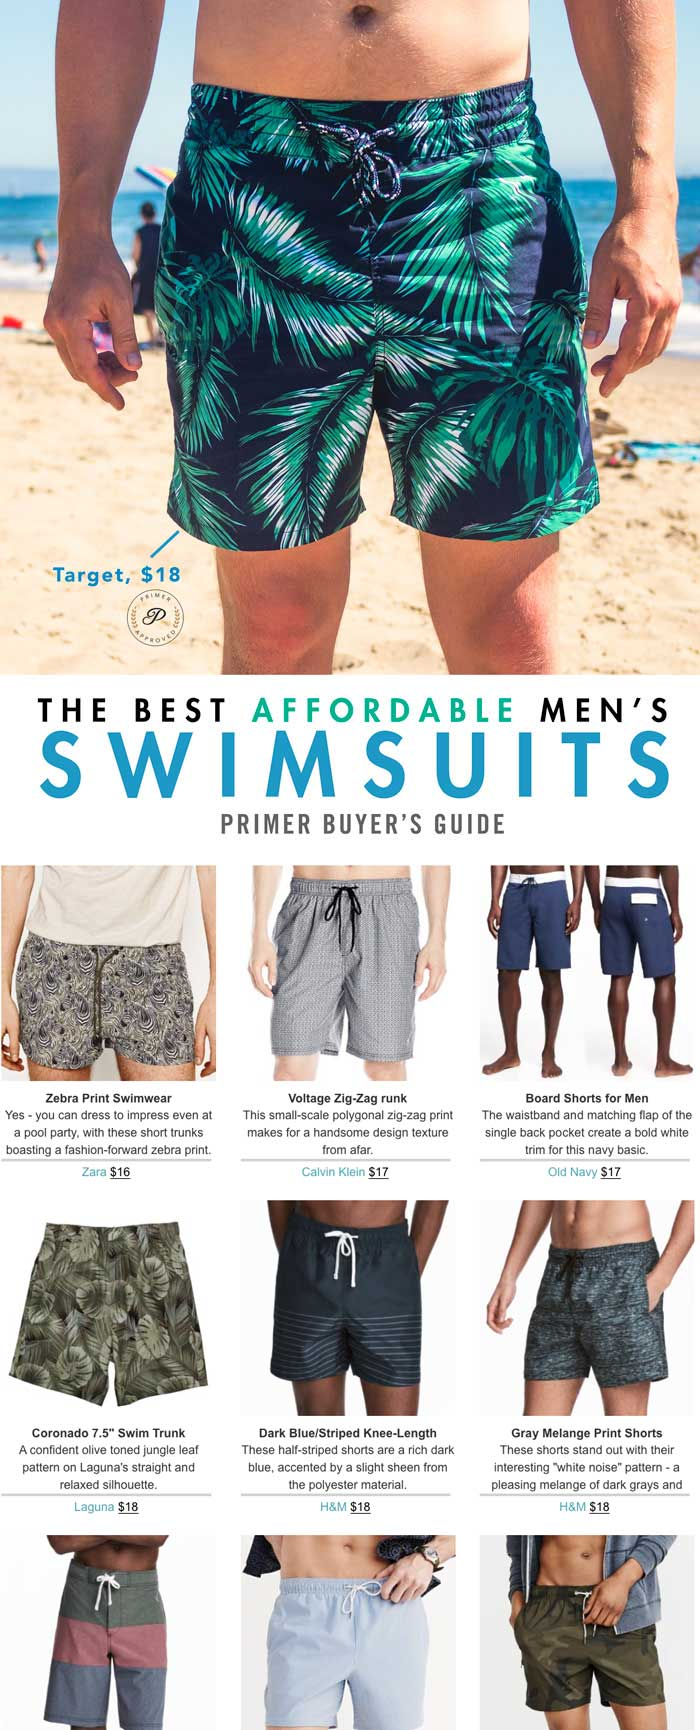 d575bc060b The Best Affordable Men's Swim Trunks | Primer